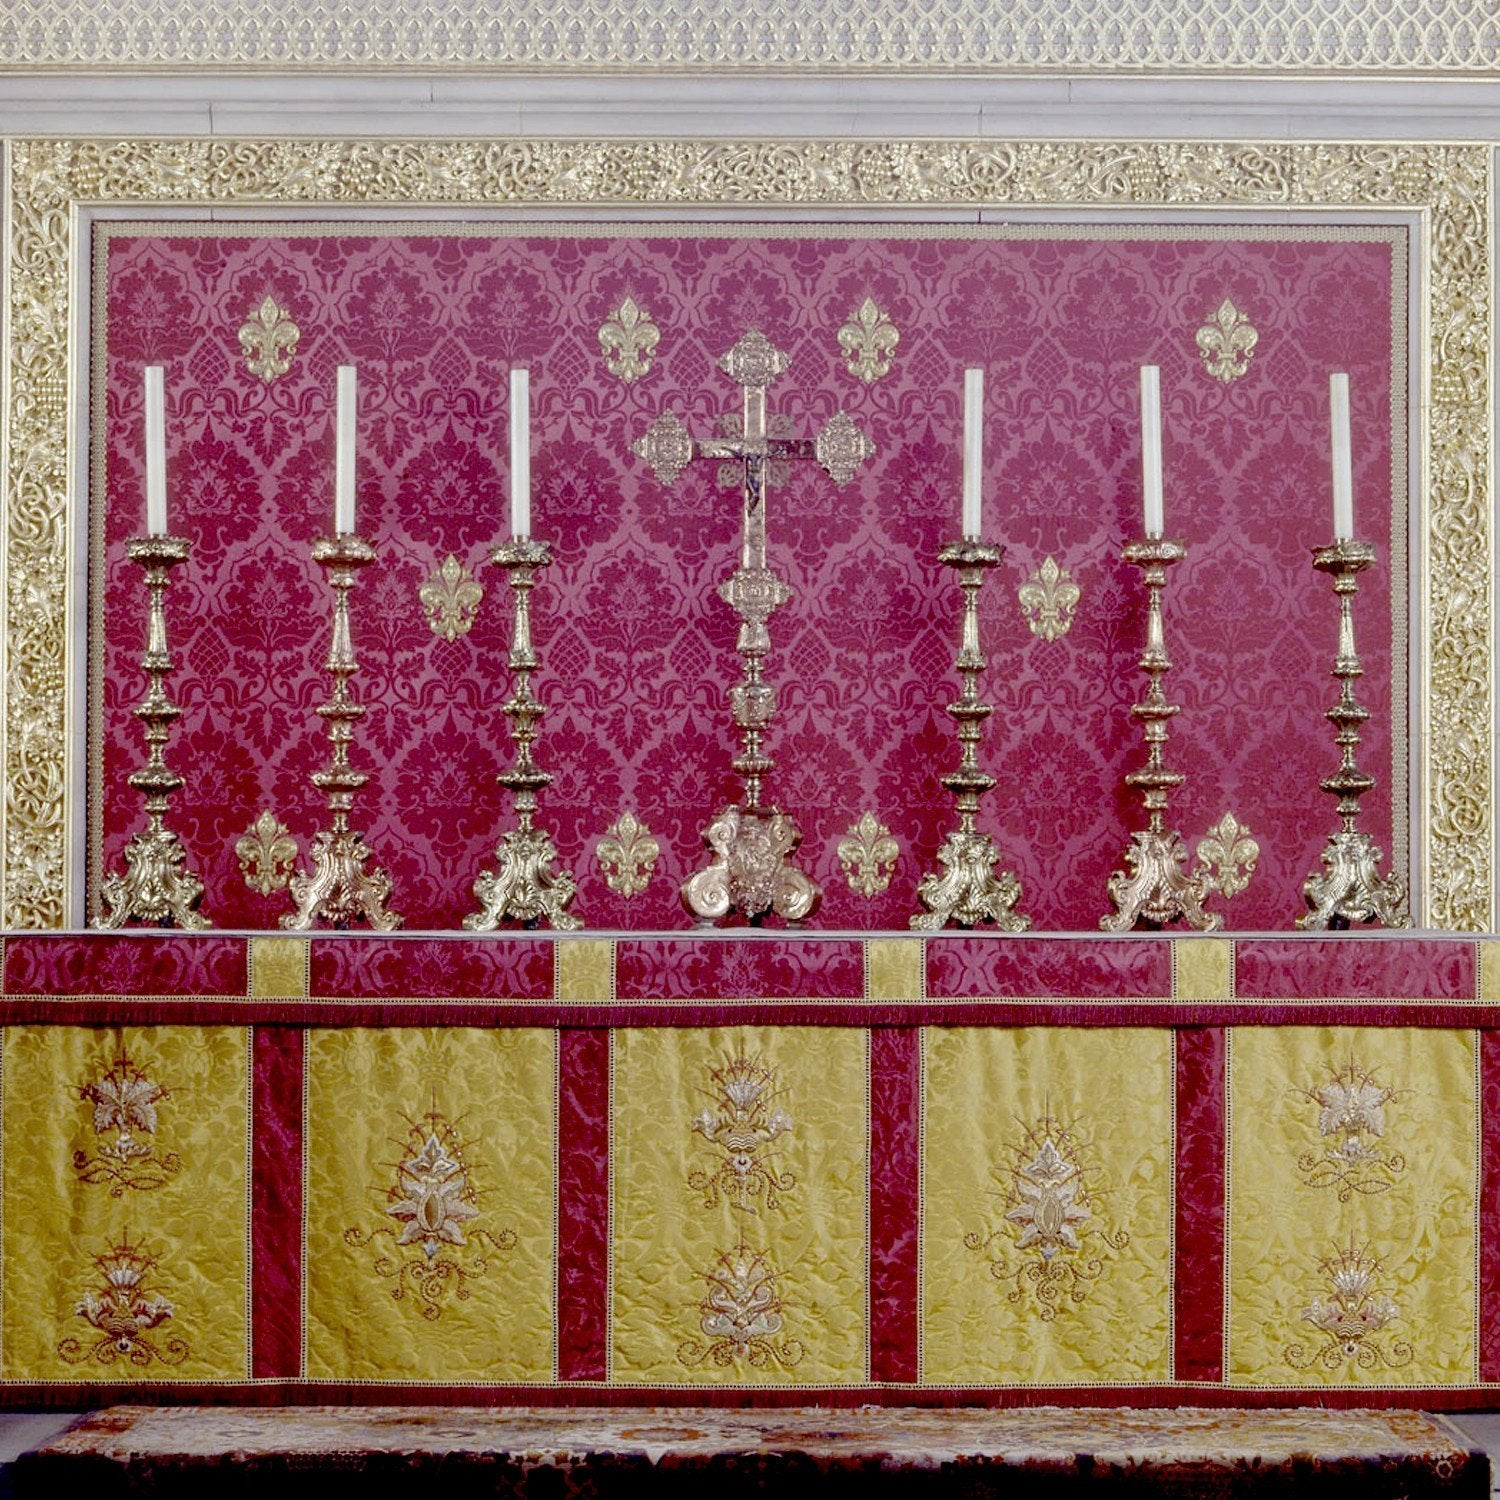 Hand Embroidered Altar Frontal & Superfrontal - Watts & Co. (international)